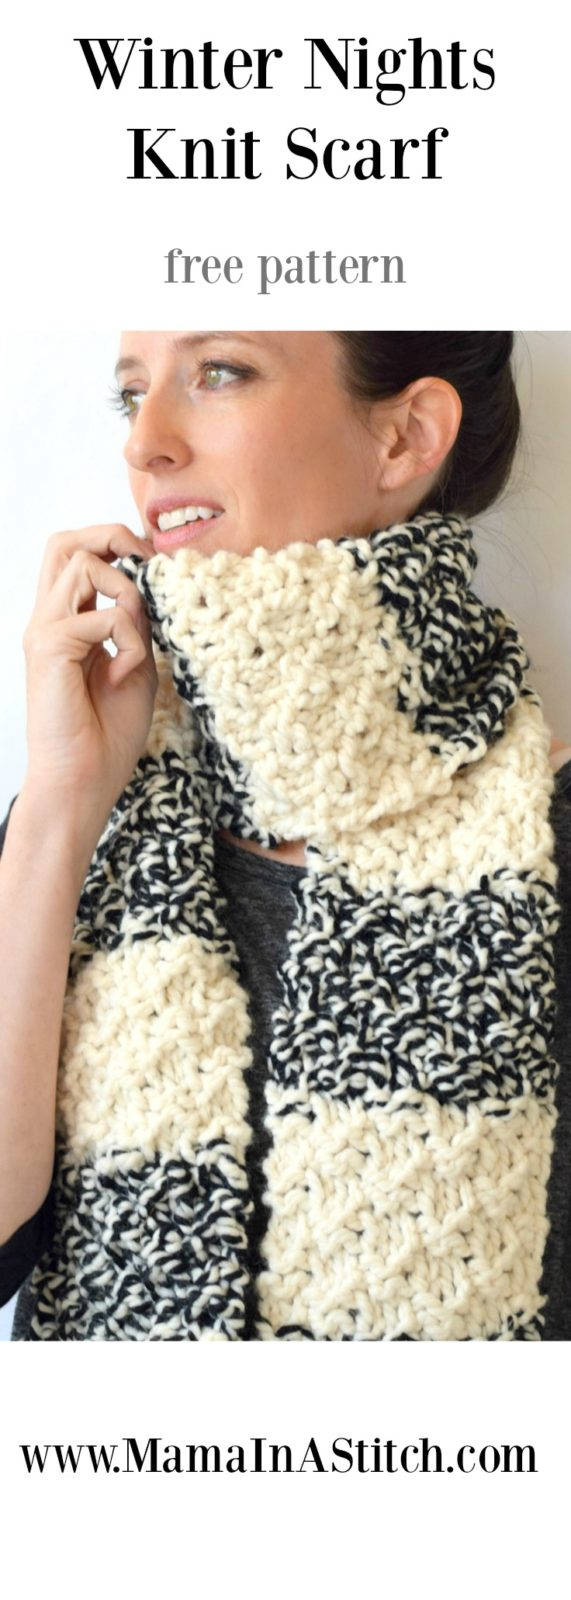 Winter Nights Easy Knit Scarf Pattern - Mama In A Stitch